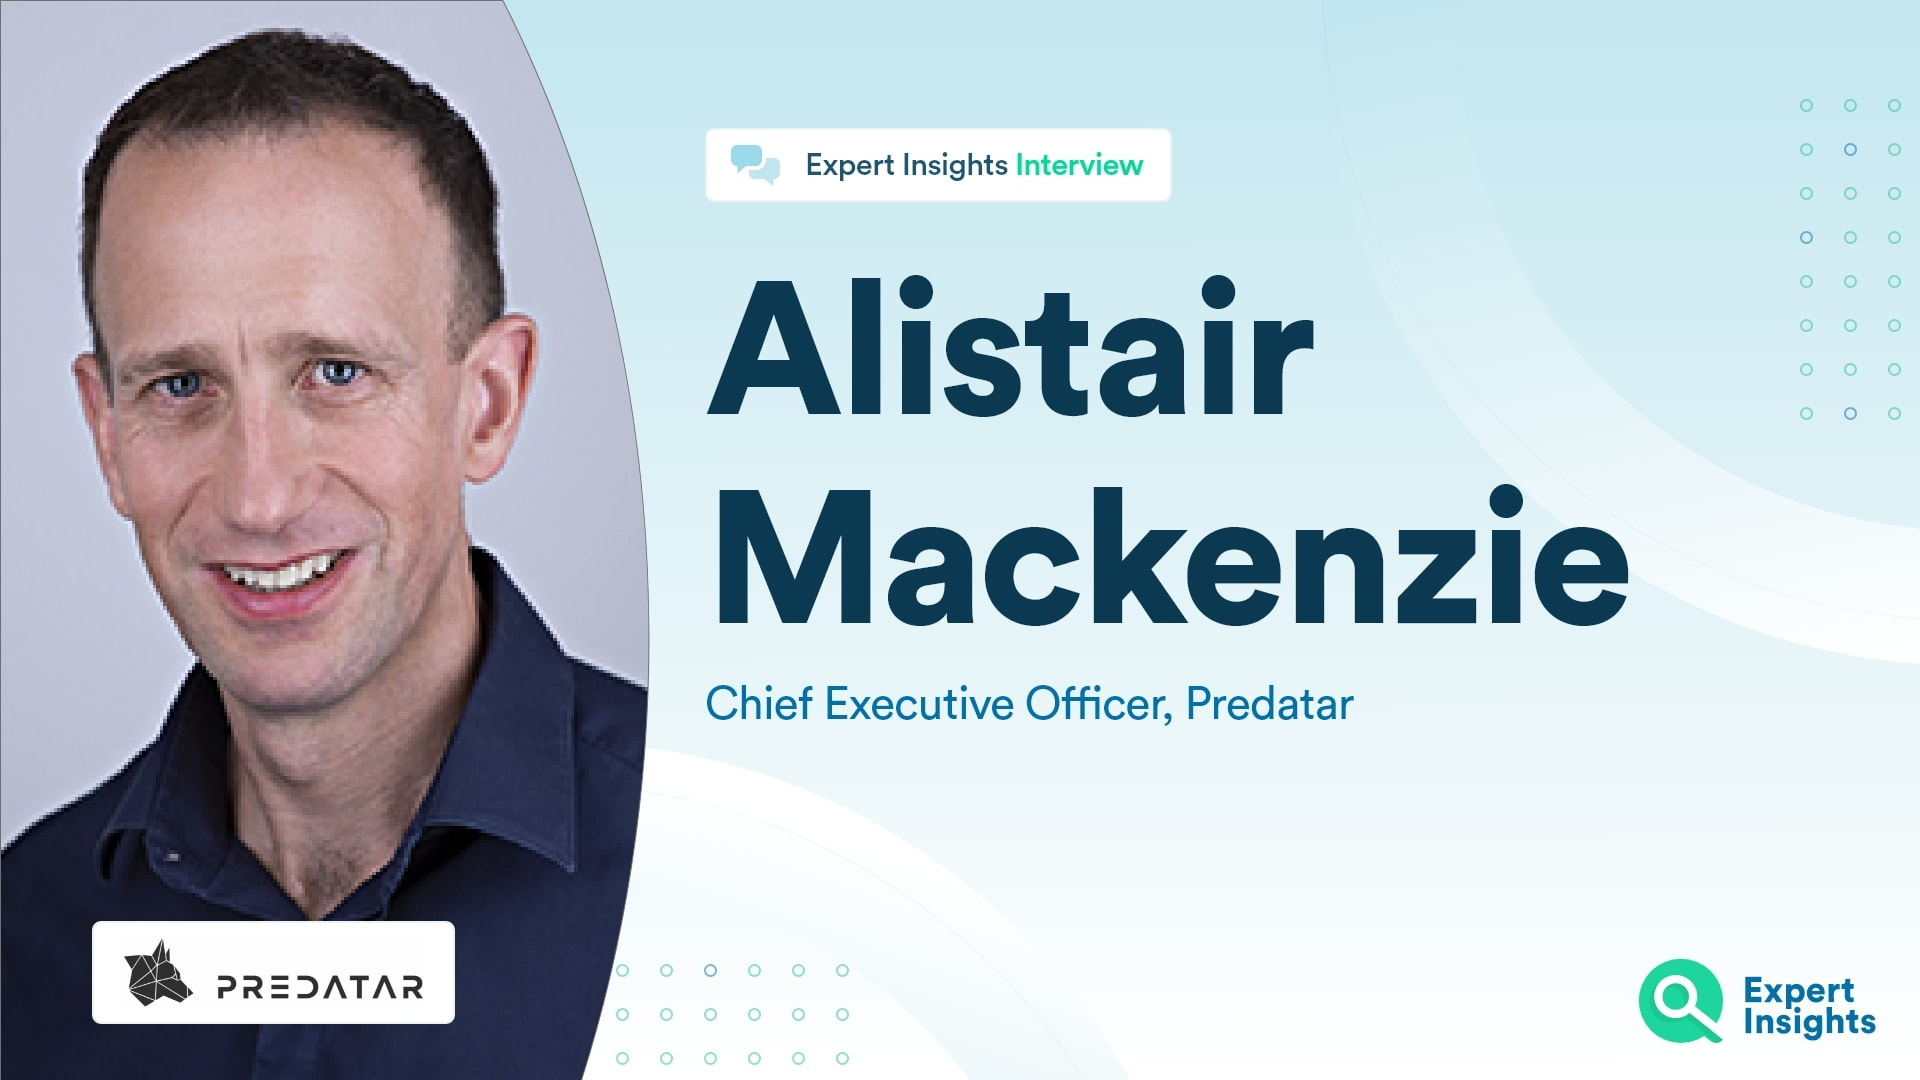 Interview With Alistair Mackenzie Of Predatar - Expert InsightsInterview With Alistair Mackenzie Of Predatar - Expert Insights